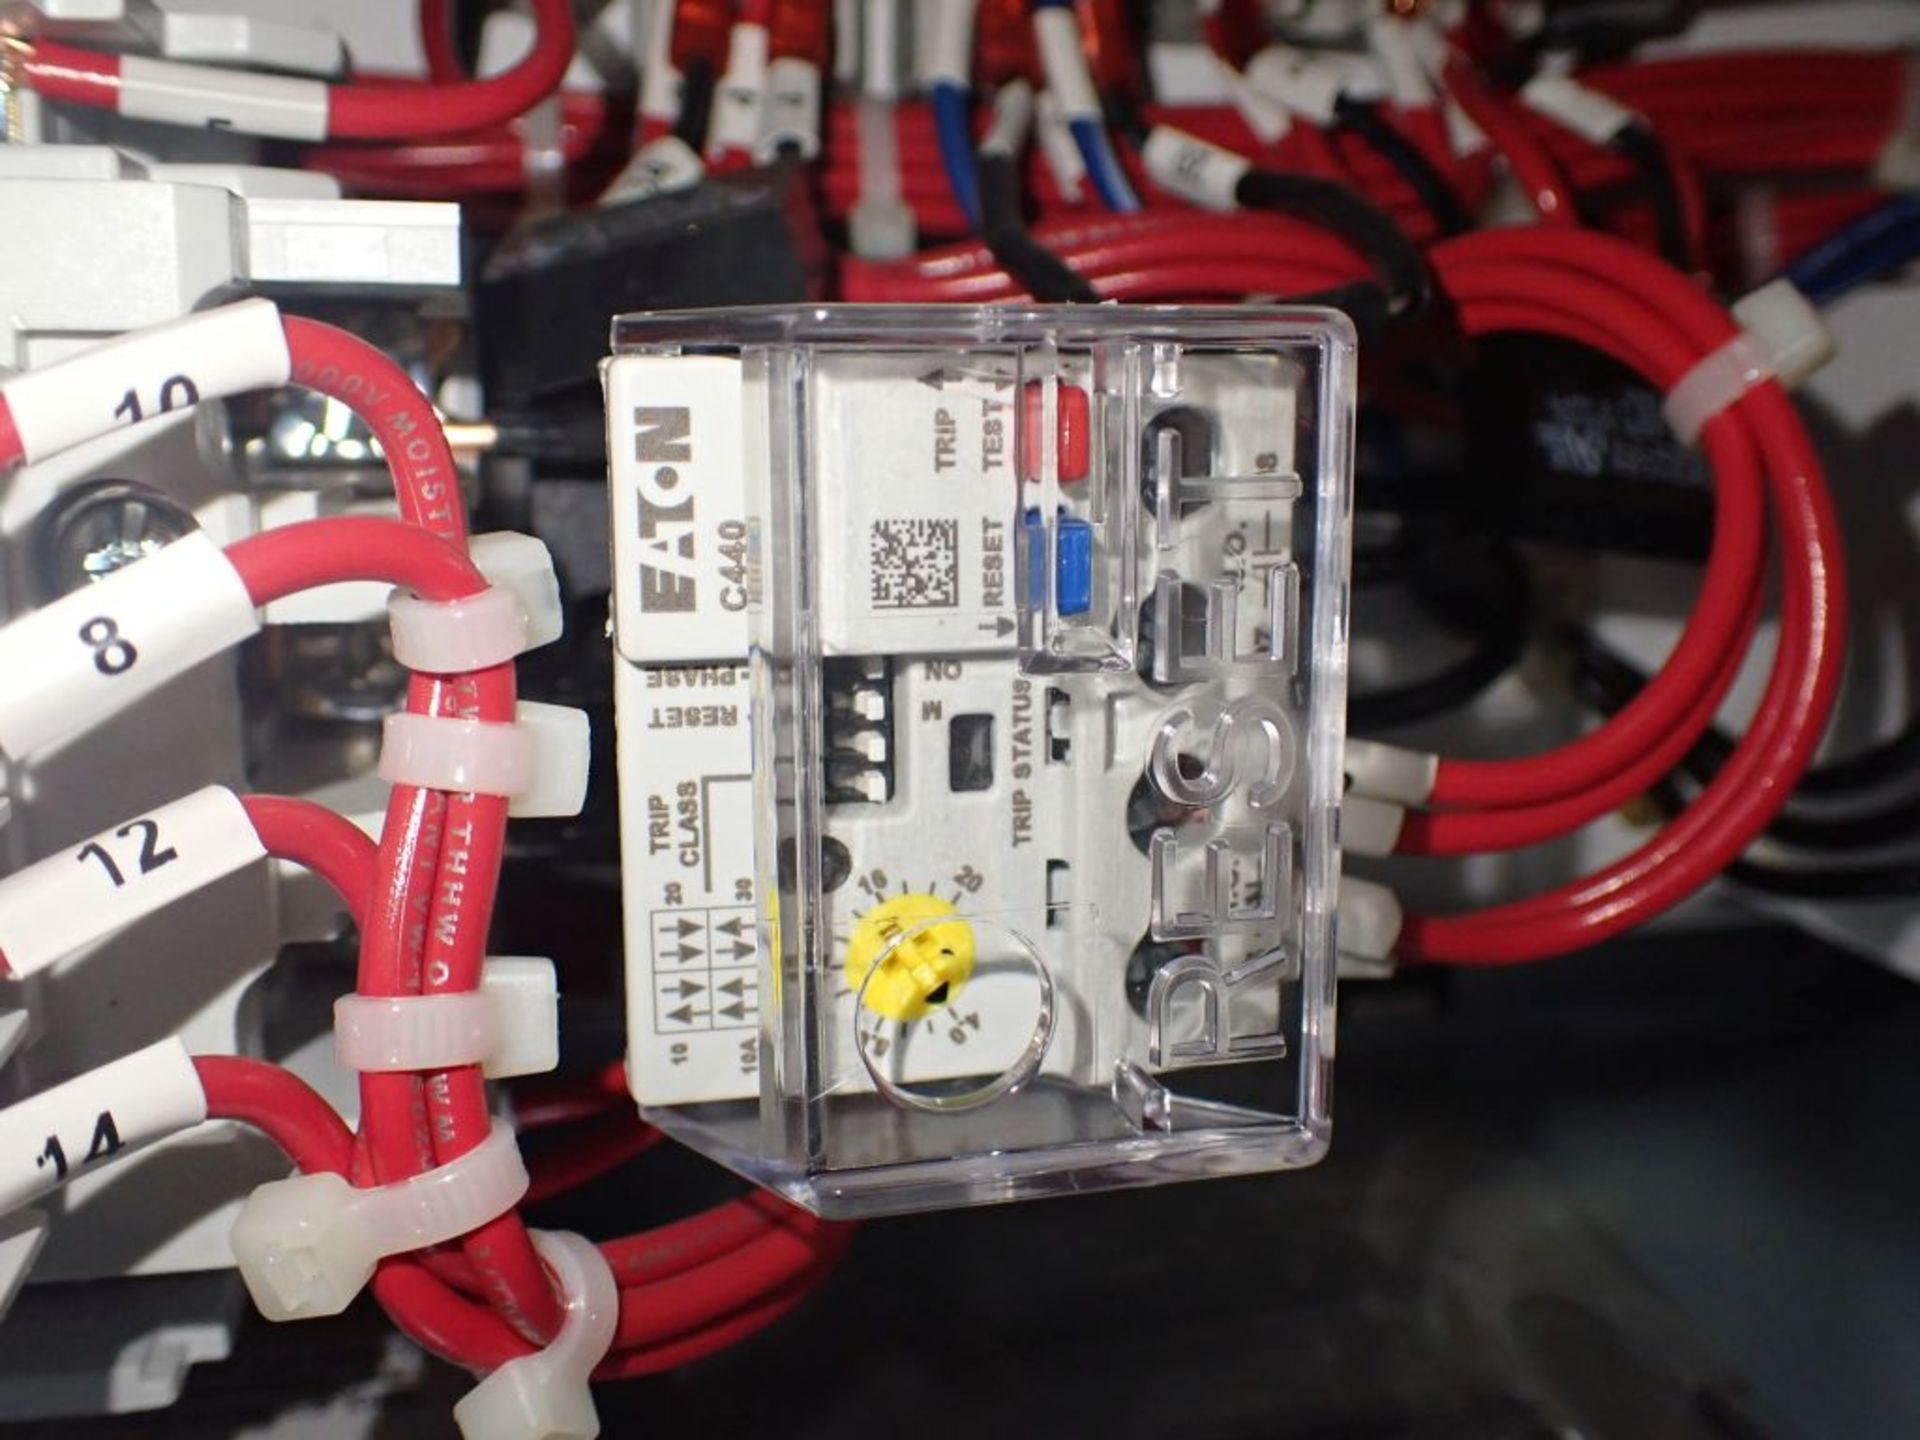 Eaton Freedom Flashgard Motor Control Center w/Components | (5) F206-15A-10HP; (4) F206-30A-10HP; ( - Image 79 of 84